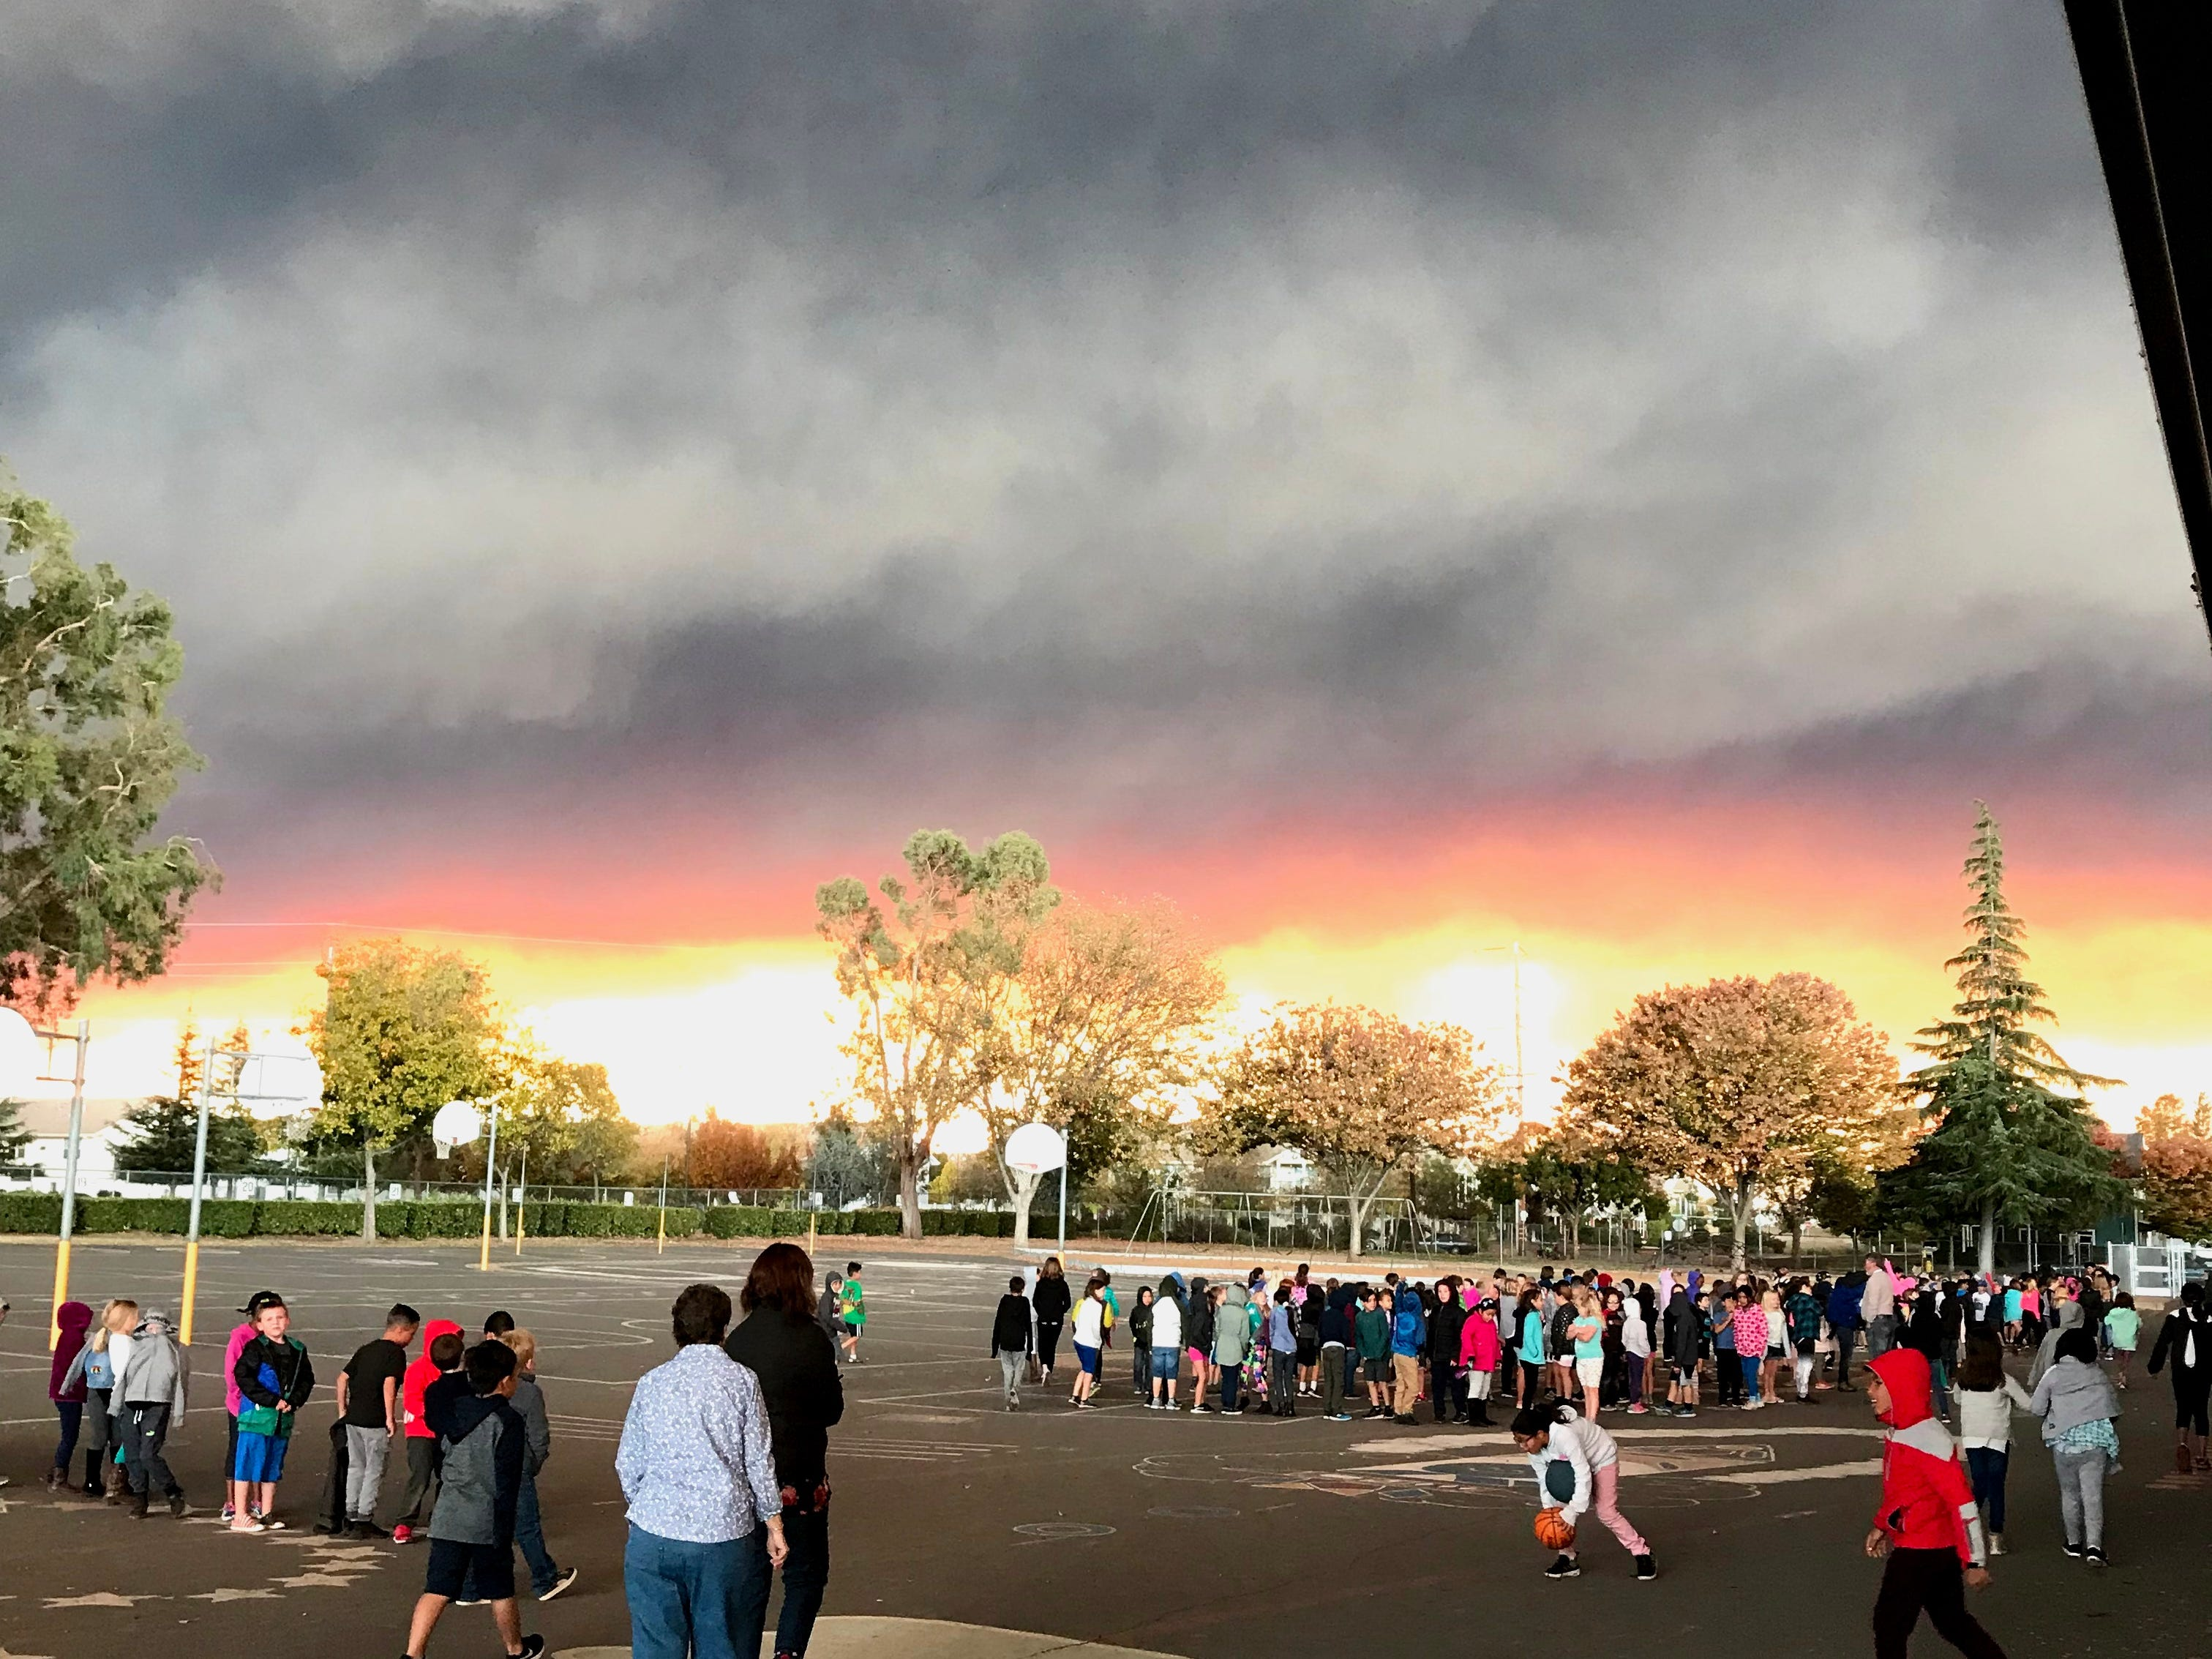 David Becker took this photo Thursday morning of the Camp Fire plume at the Little Chico Creek Elementary School in Chico.